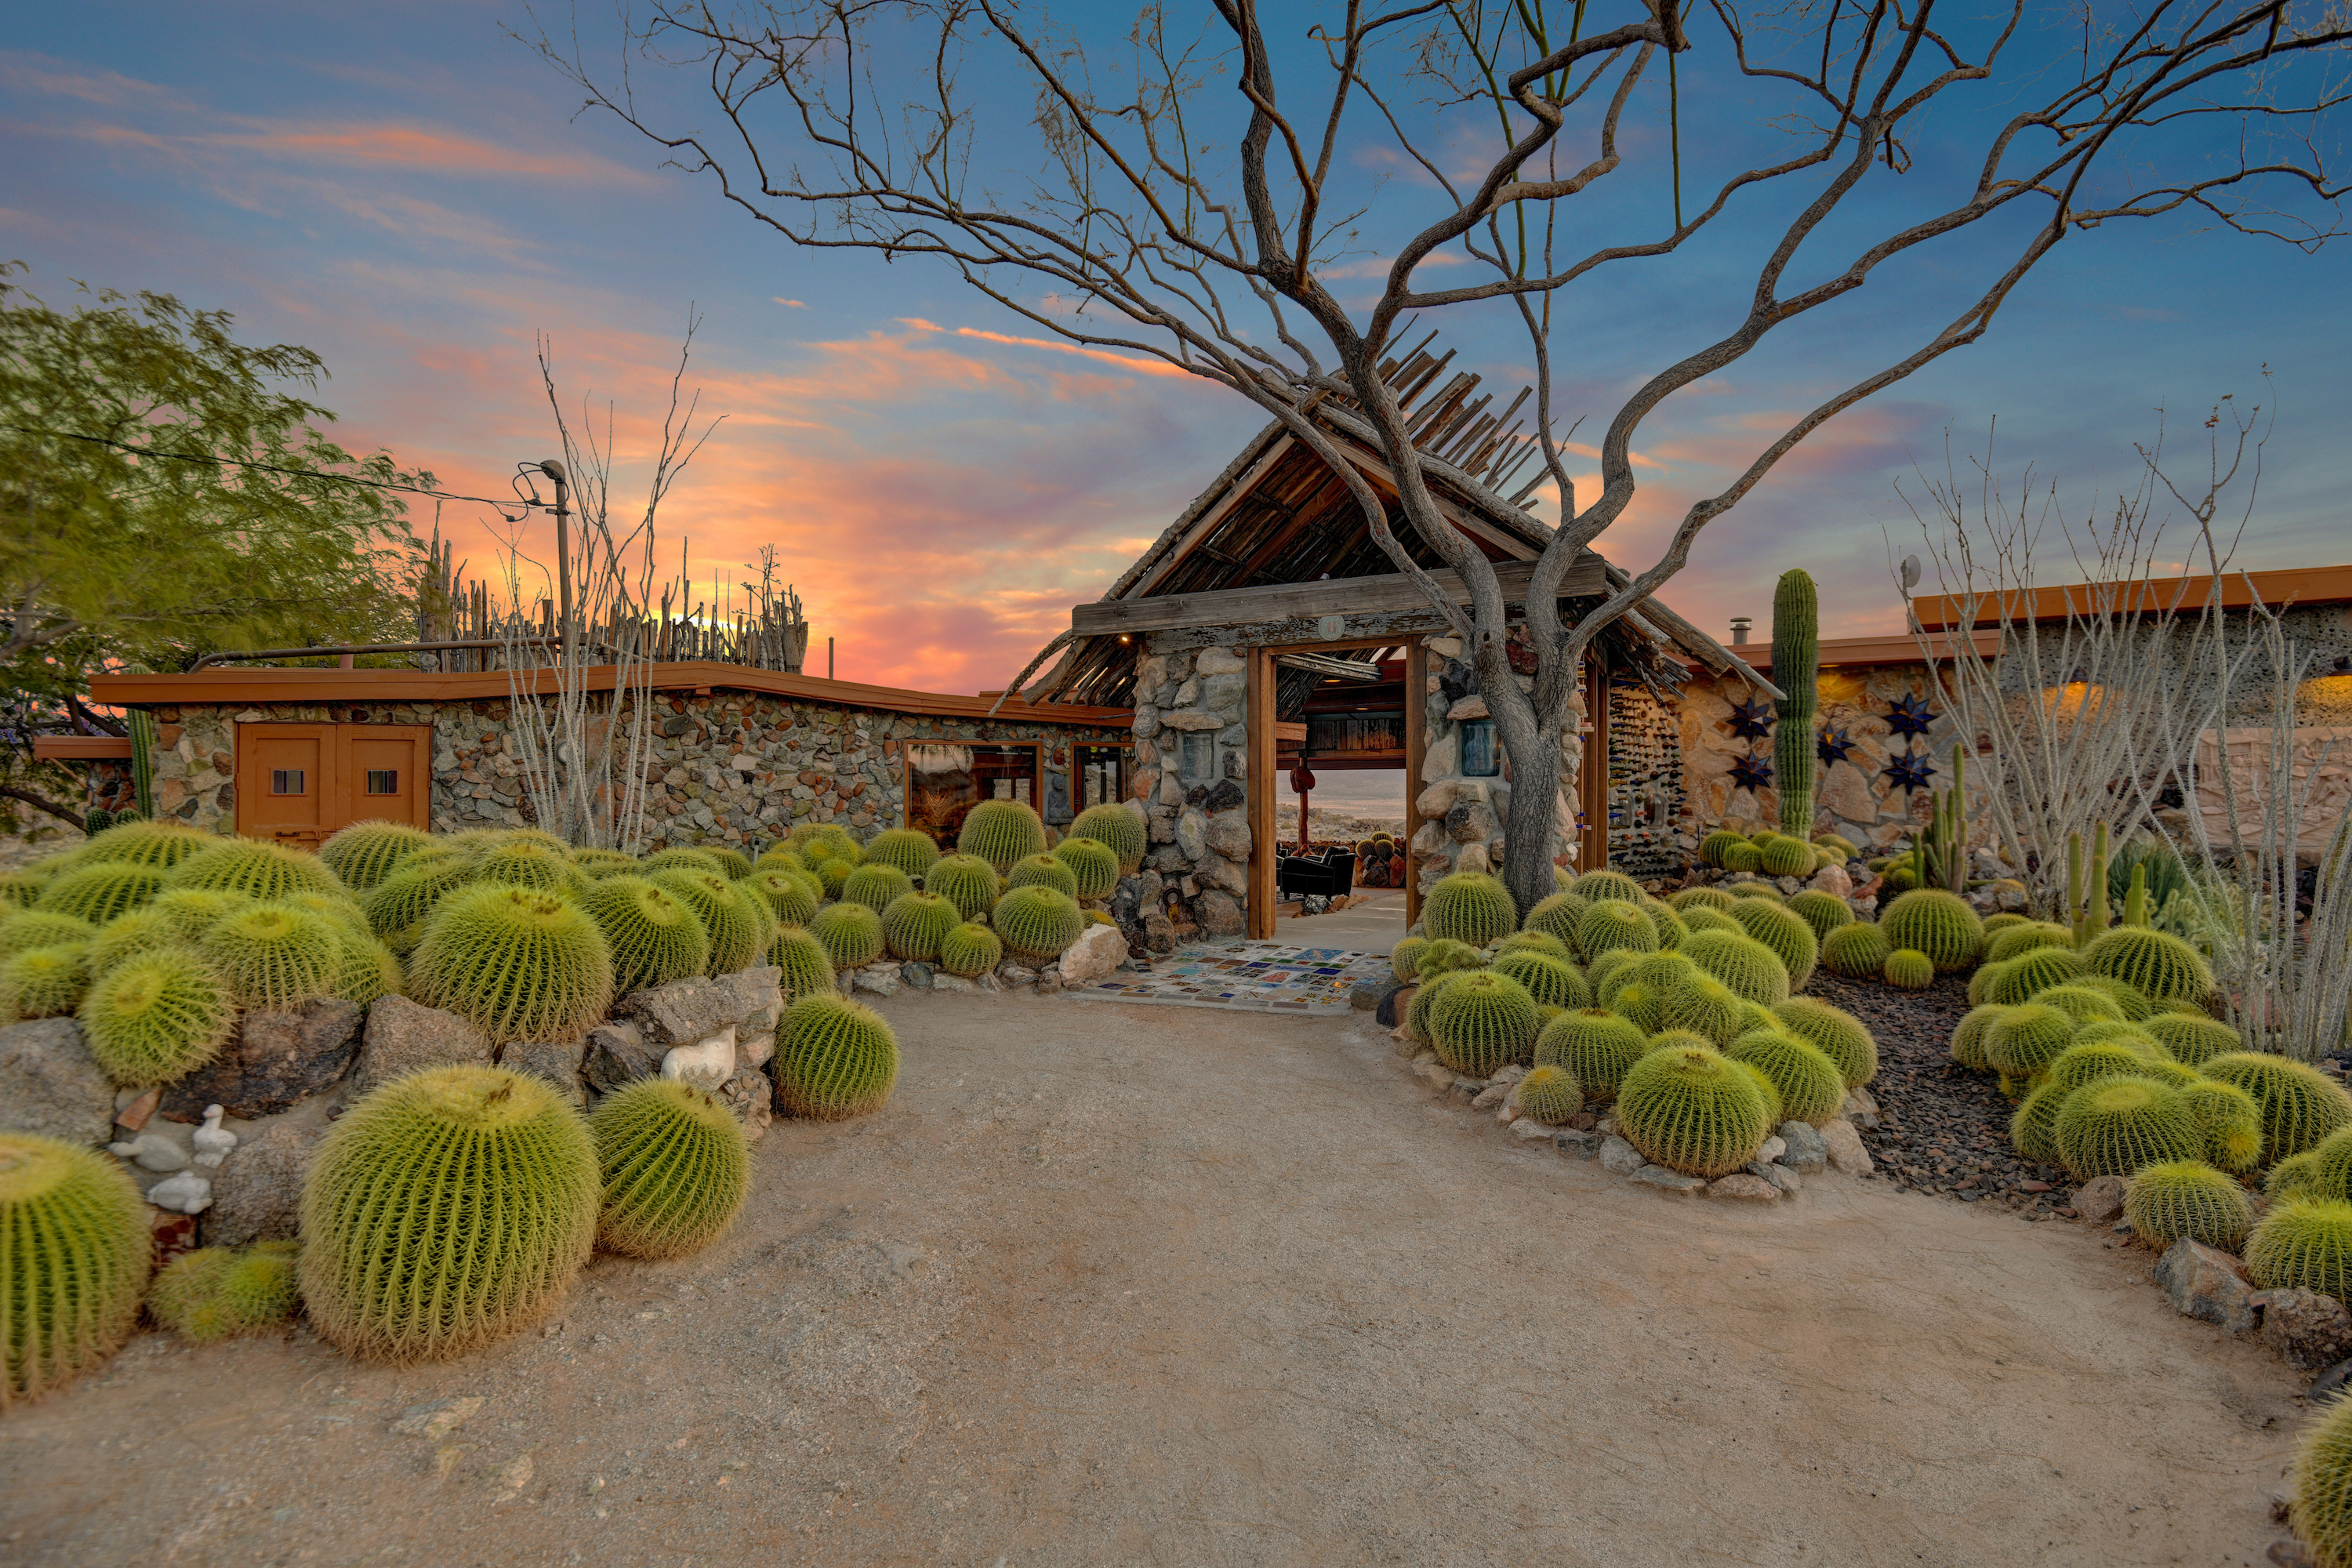 A wood and stone house sits in a landscaped desert garden with cacti and paths.